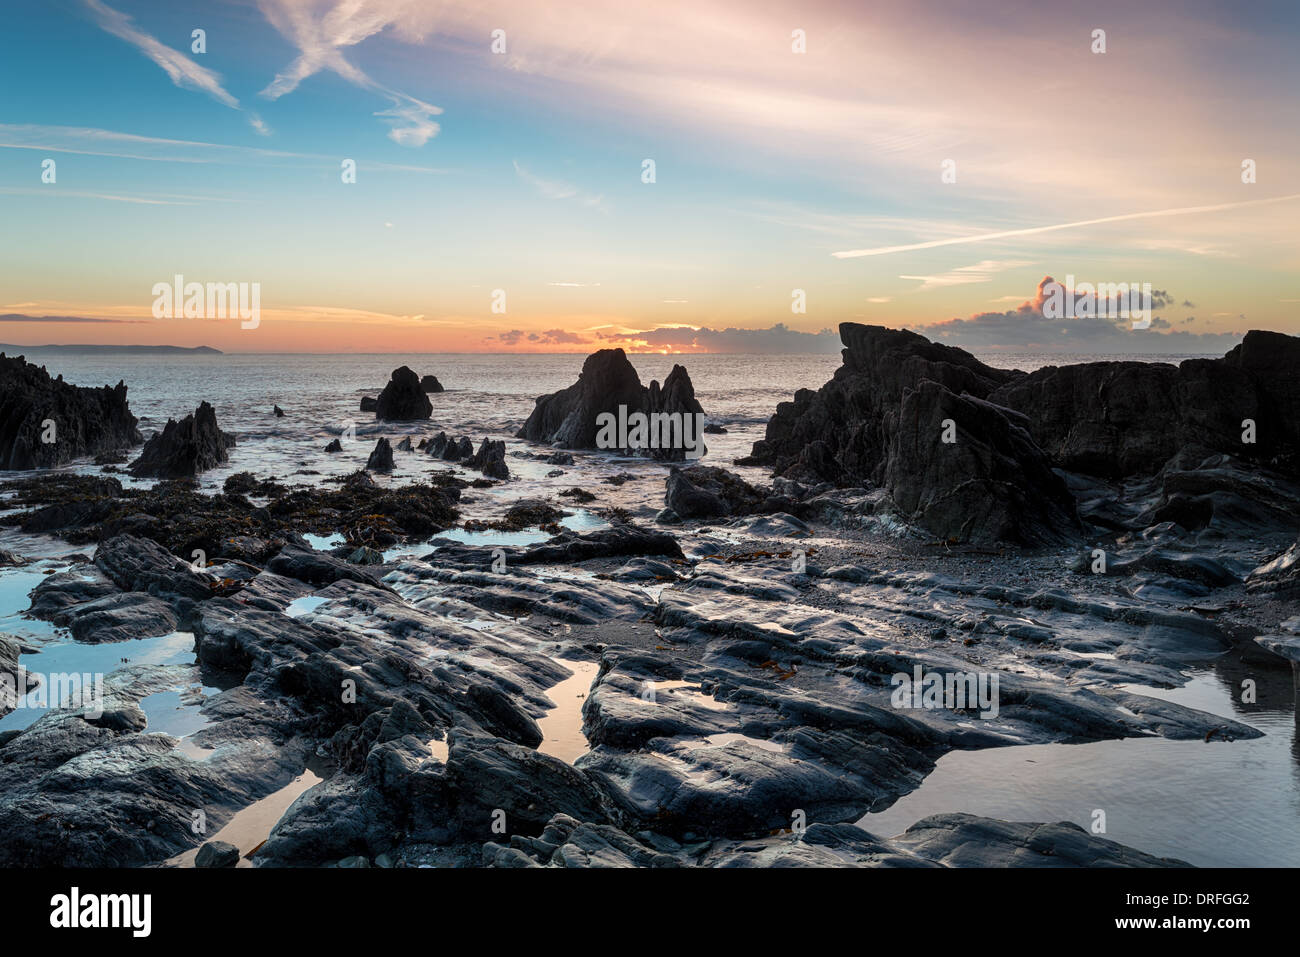 Low tide and sunrise at the beach at Looe in Cornwall - Stock Image